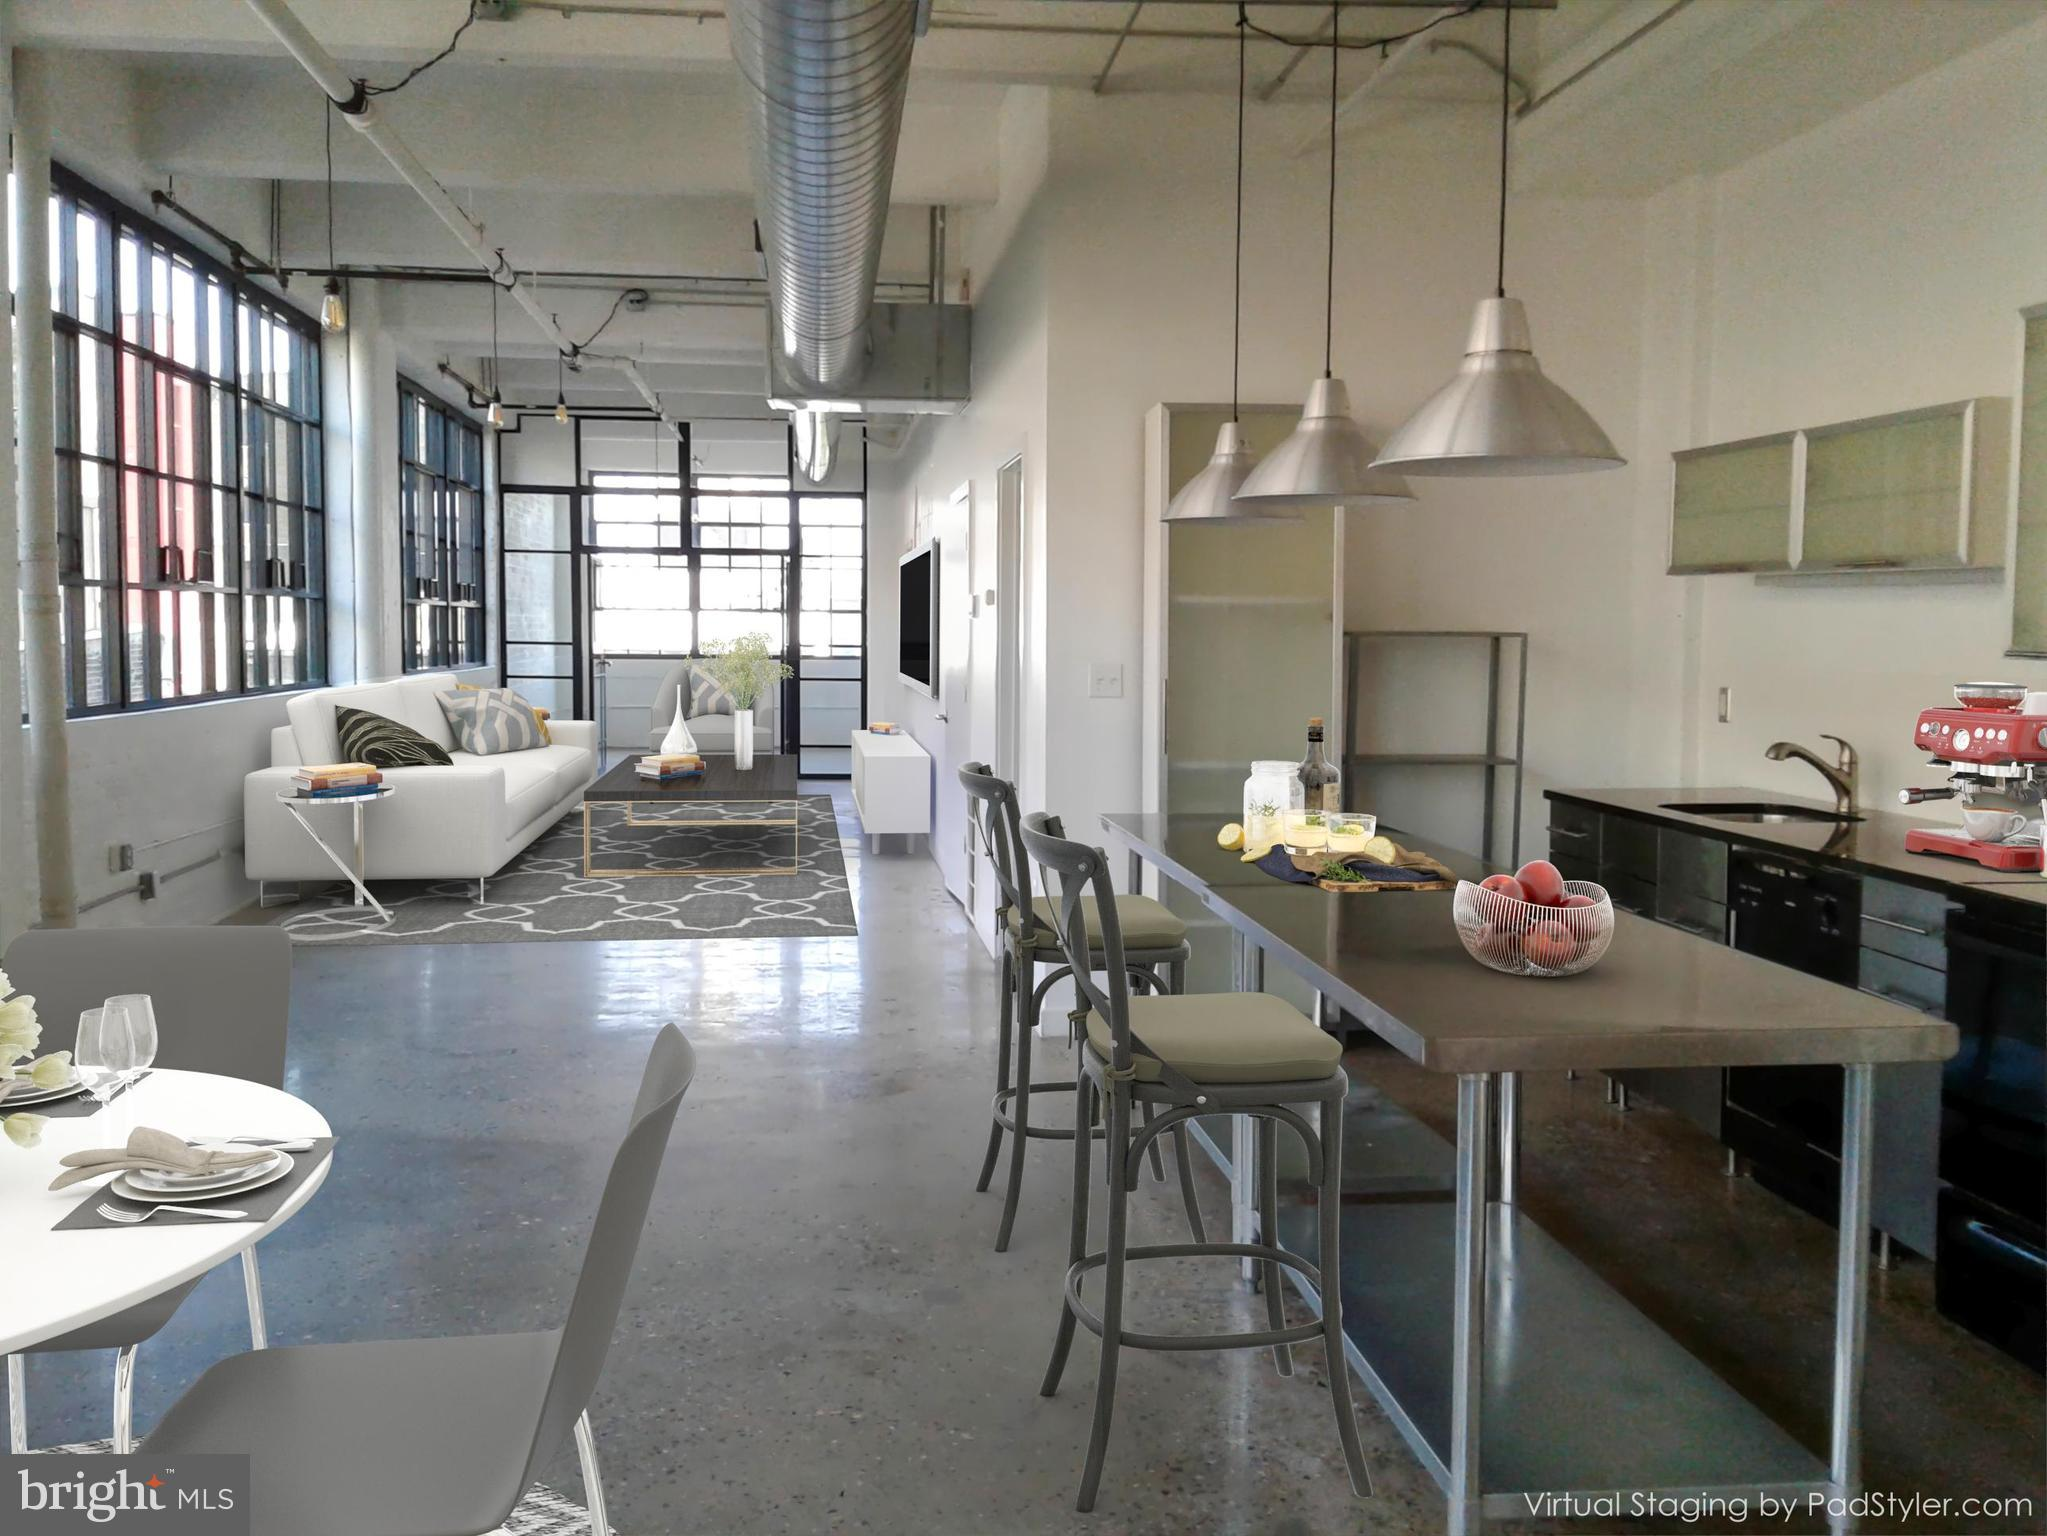 Here's your opportunity to live/work  in a NY Manhattan Style Loft in an Old City Landmark, The Daniel Building. This building is an example of  Art Deco architecture built in 1927 as a garment factory and repurposed  into Live/Work Lofts in 2005.  Views of Old City and Christ Church from East windows. Building includes 14 units and 2 elevators.  Recent renovations include new roof and installation of new unit windows.  Brick pointing and cleaning is being completed. #502 is approx. 2,000 SF of space with 3 sides of full wall  of new windows facing East, West and North forcing light into this awesome unit. This loft features polished concrete floors , high ceilings, open space  Kitchen Stainless cabinets, appliances and granite counters and open dining /living space , 2 bedrooms, 2  full bathrooms and a glass enclosed front room which can be used as a den, library or sitting room.  A Balcony is shared and connects #501 and 502 on the N 3rd Street side. This loft space provides the flexibility of live/work space with Condo Association approval.  Old City has much to offer for those individuals that are looking for a different life style.  Vacant & ready for Occupancy.  Parking is available in the nearby parking lots or garages (prices will vary).